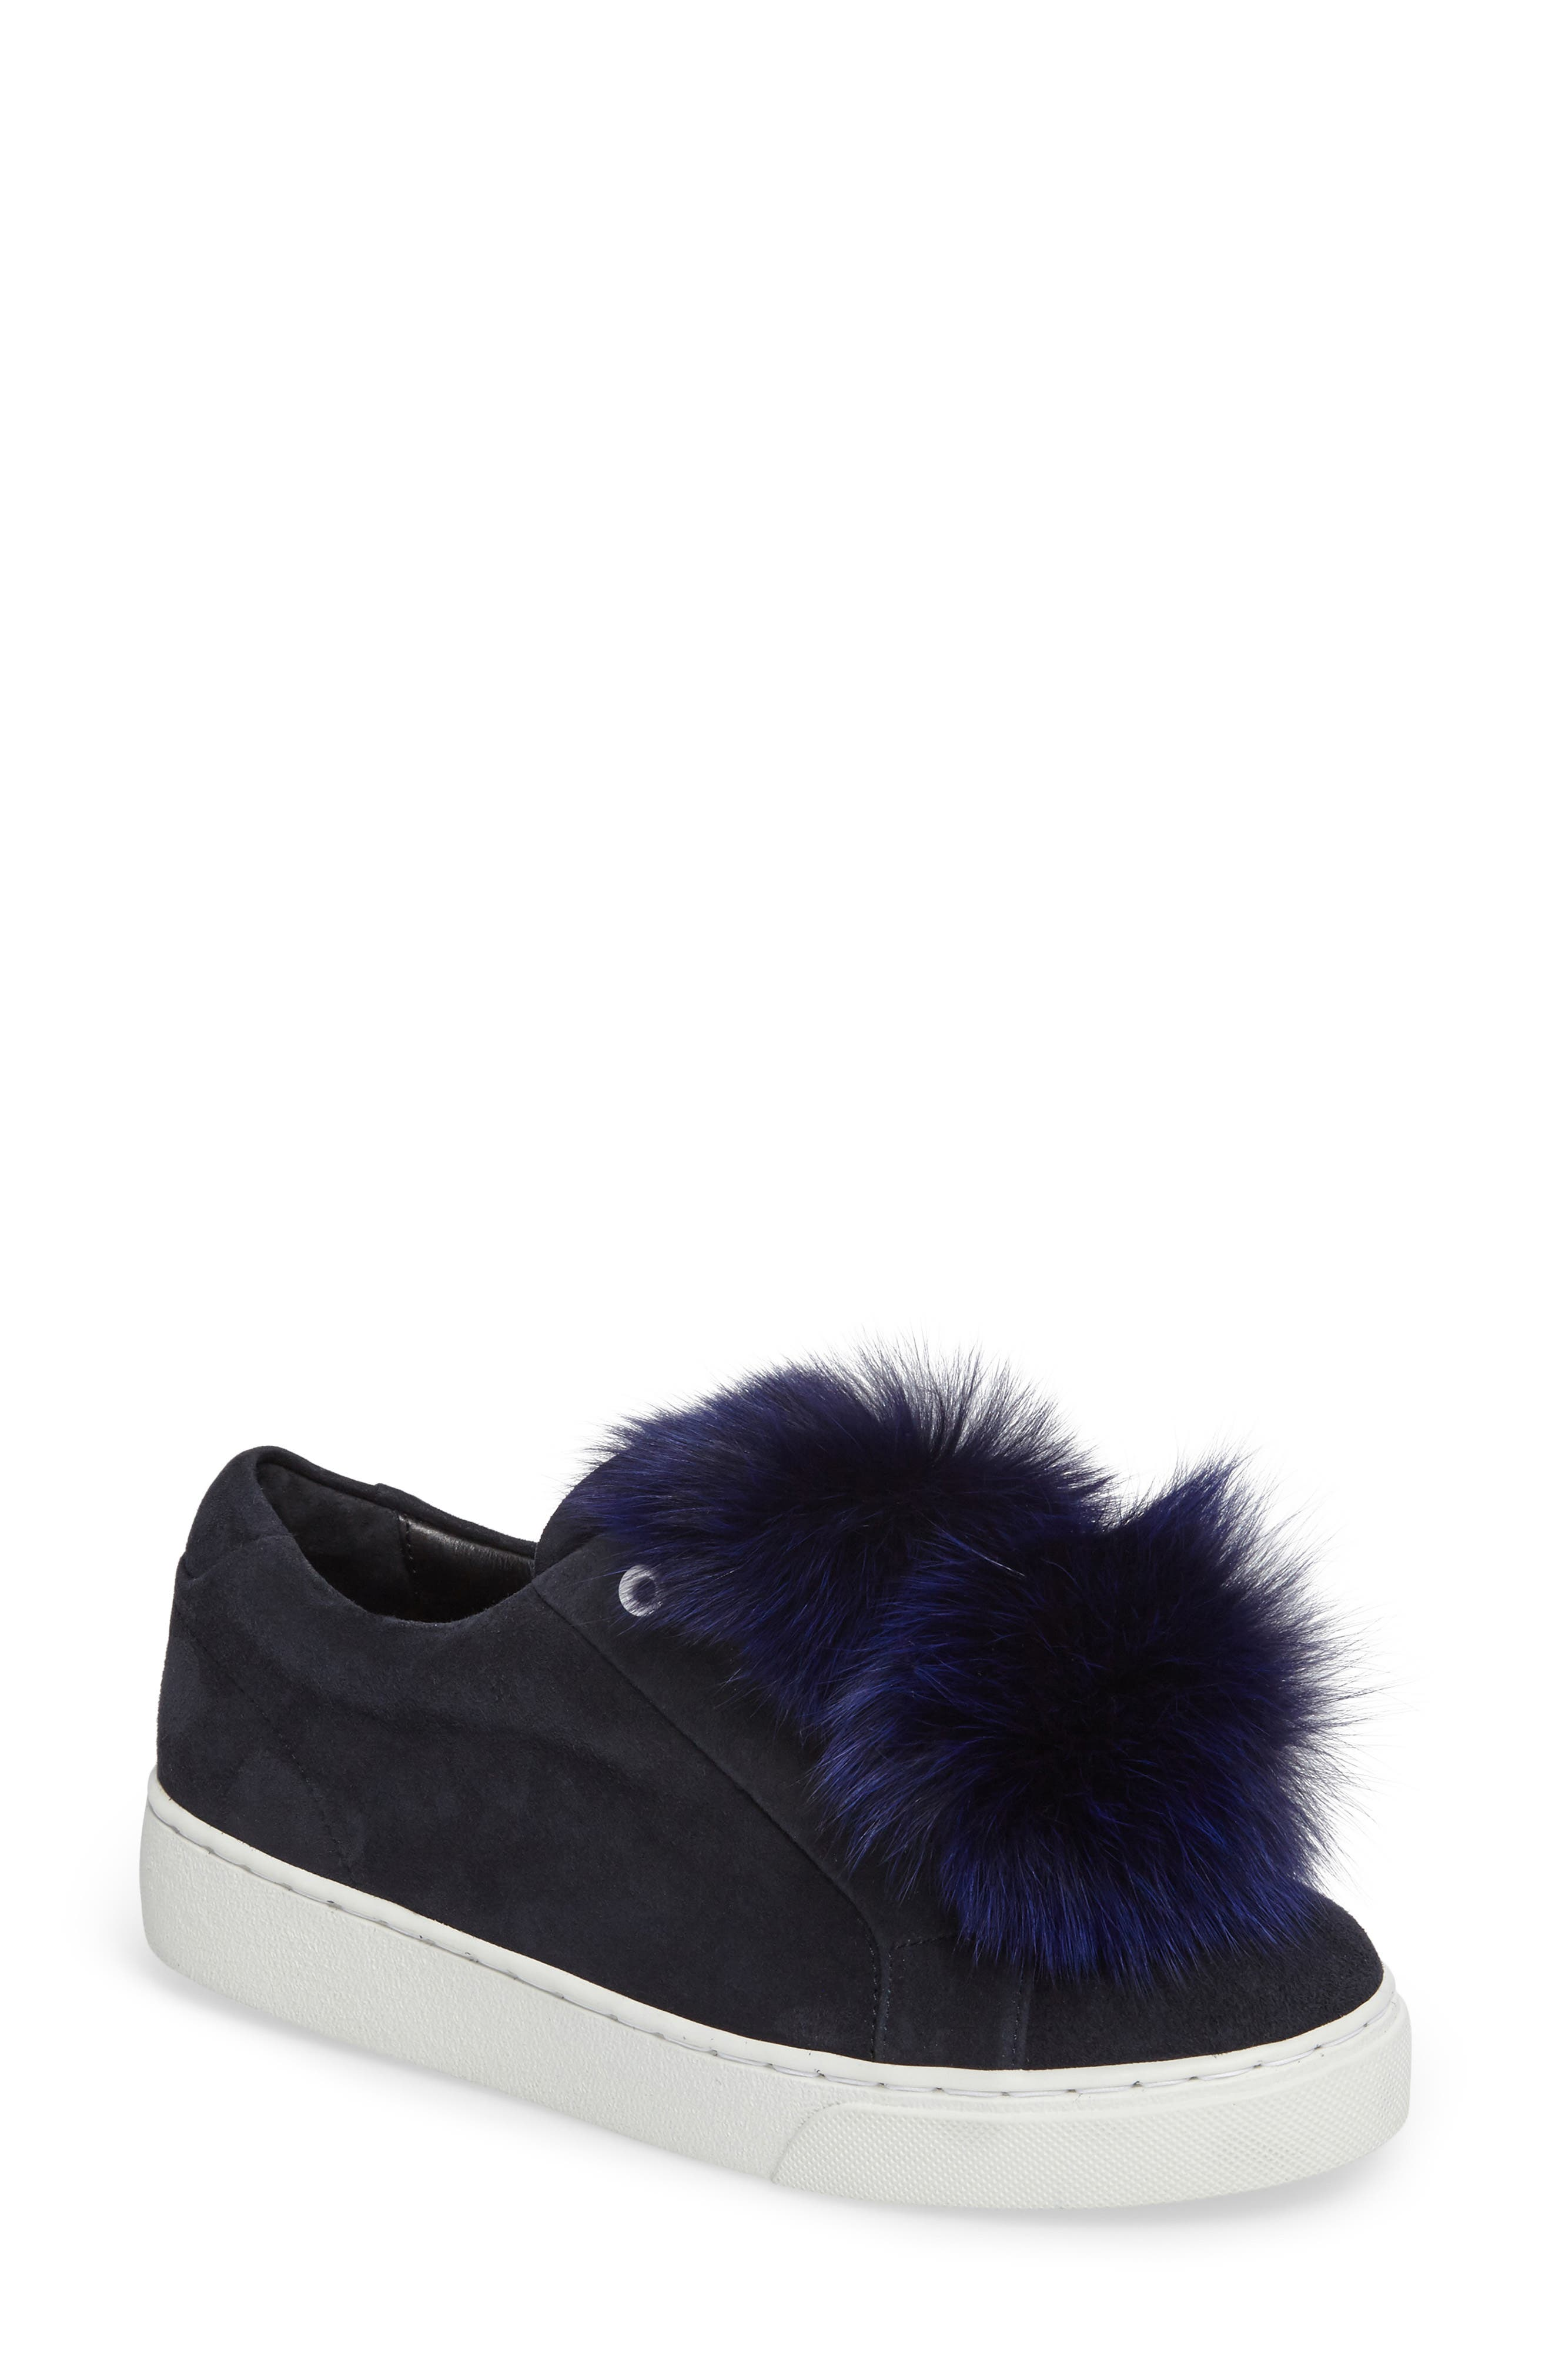 T Genuine Fox Fur Slip-On Sneaker,                         Main,                         color, 410